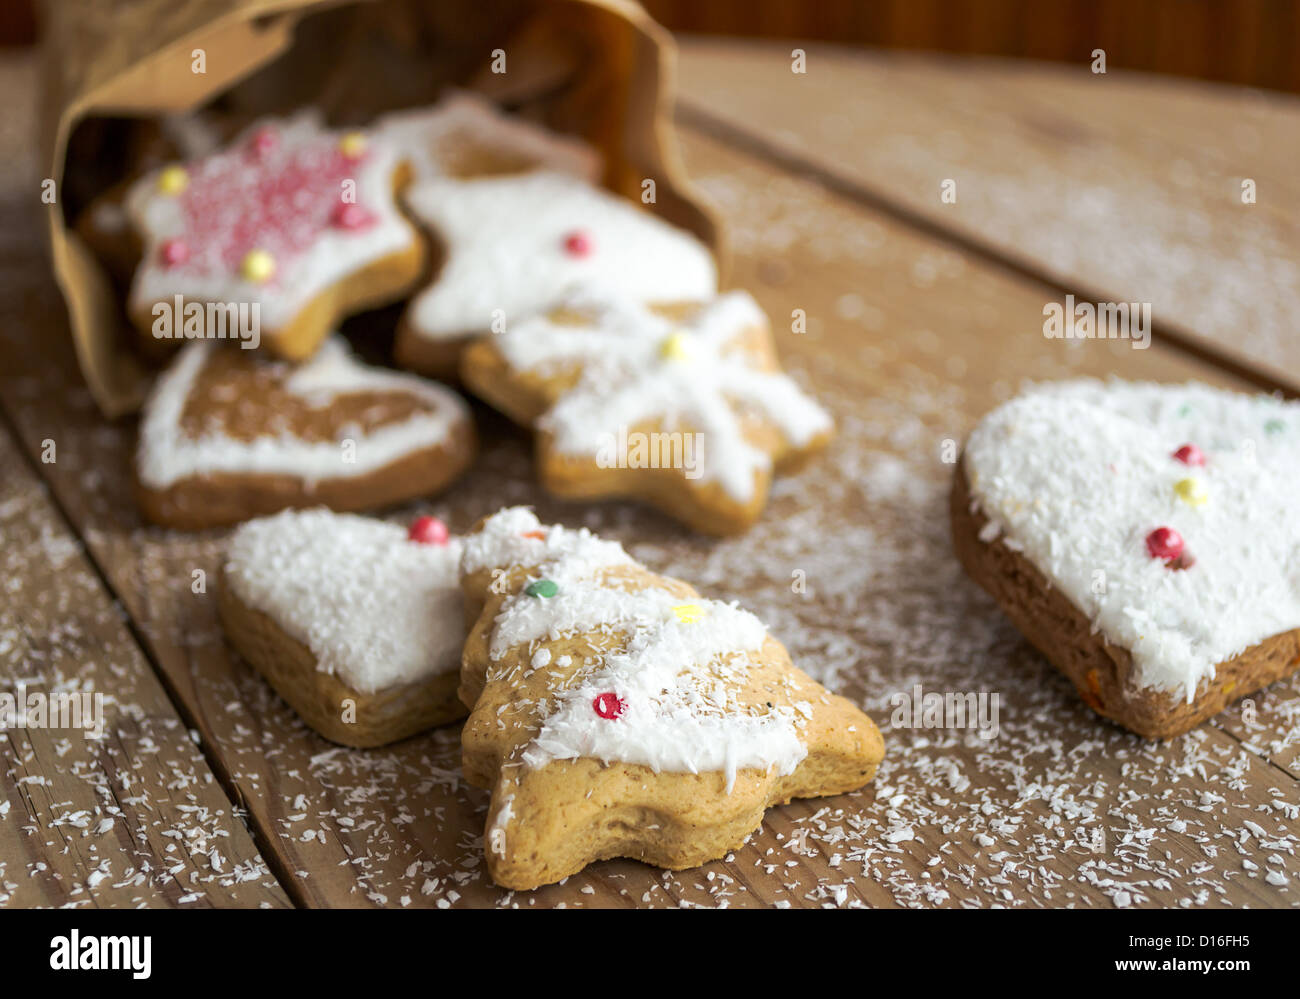 Homemade christmas cookies with decoration on wooden table - Stock Image